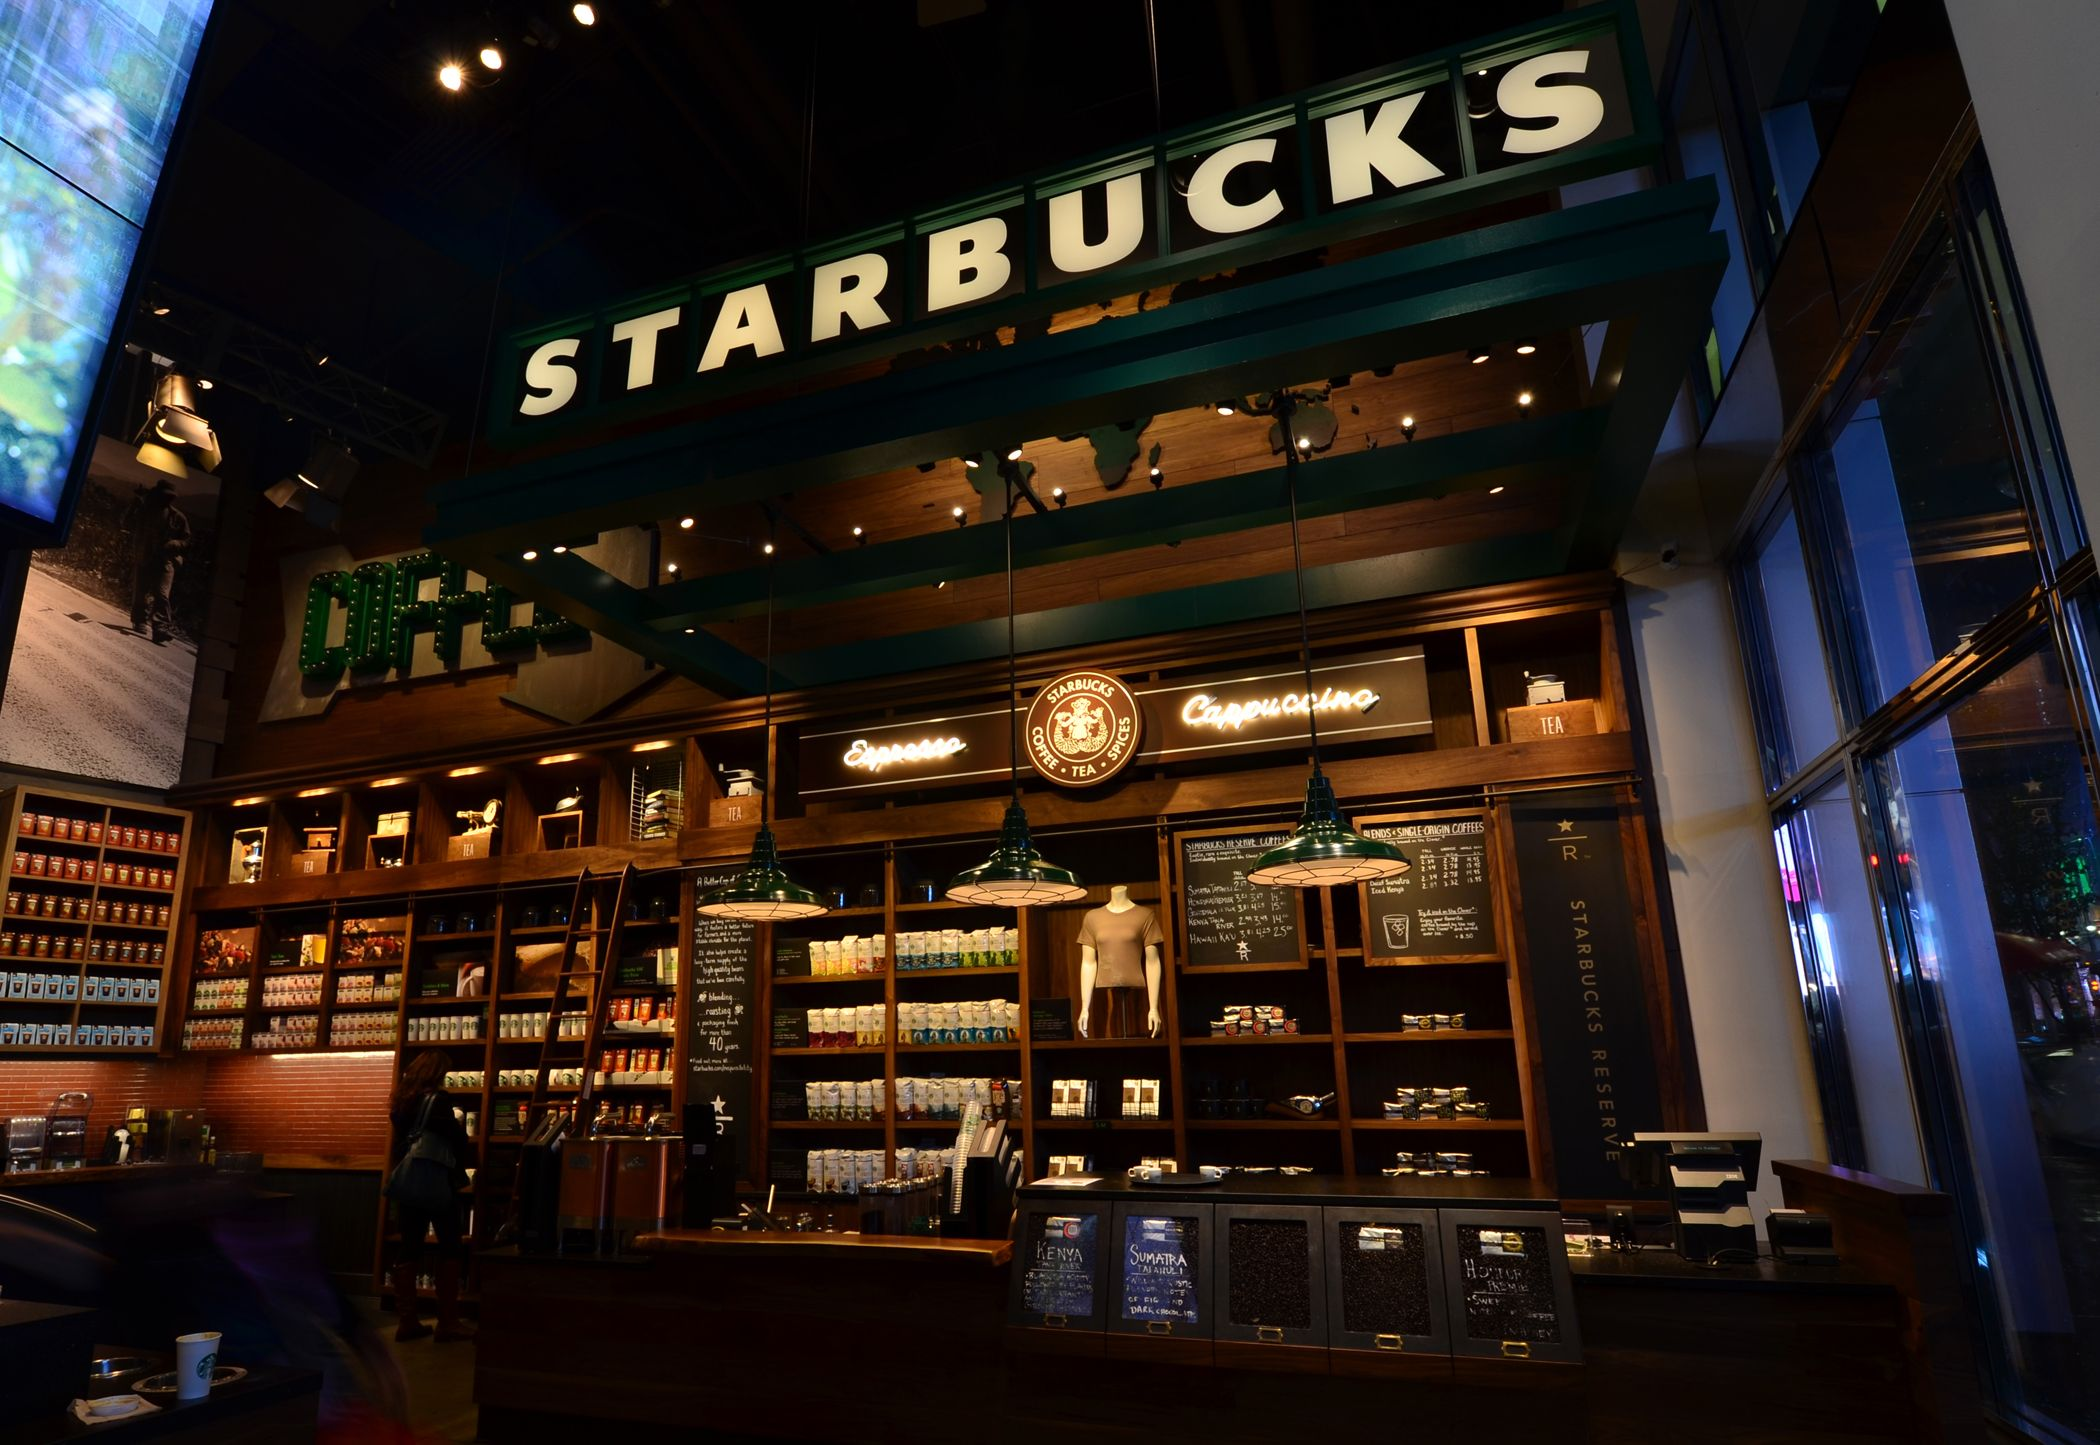 Ferreira used new led lighting in a starbucks store in new